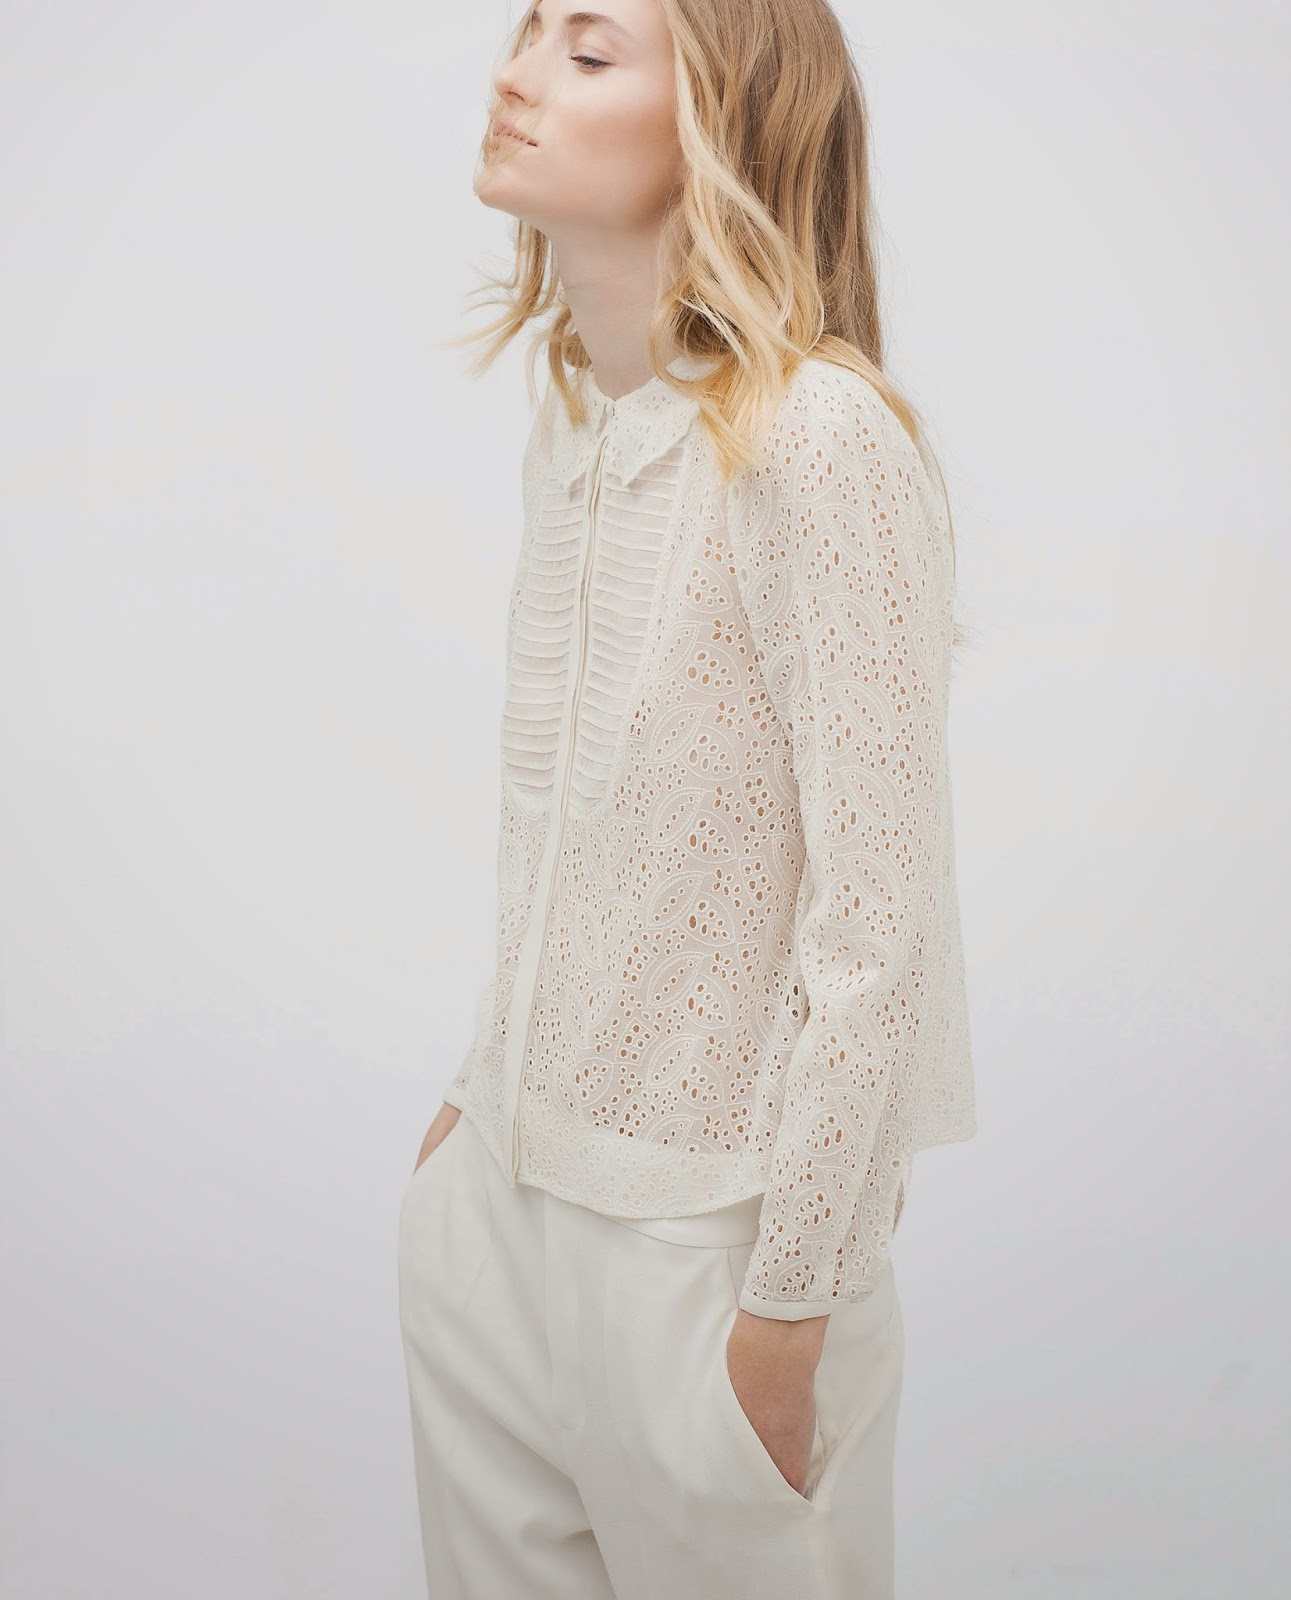 zara white embroidered shirt, zara embroidered blouse,